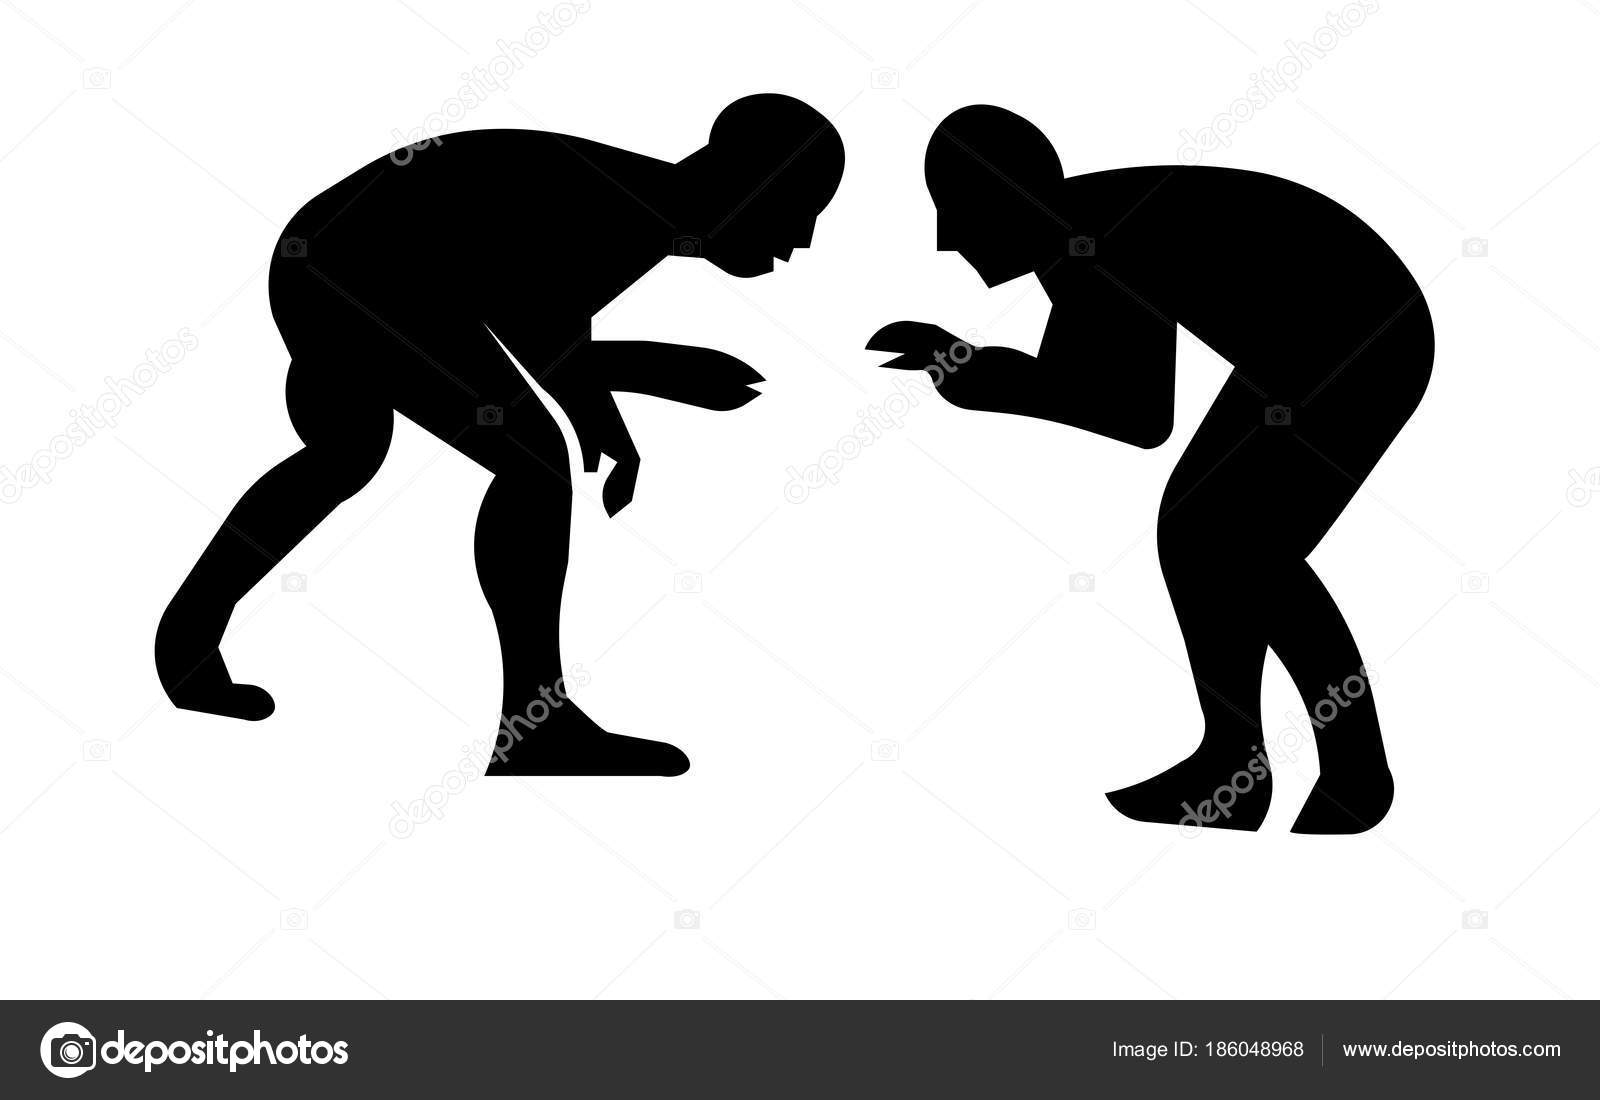 Wrestling silhouette clip art on white background — Stock Vector.